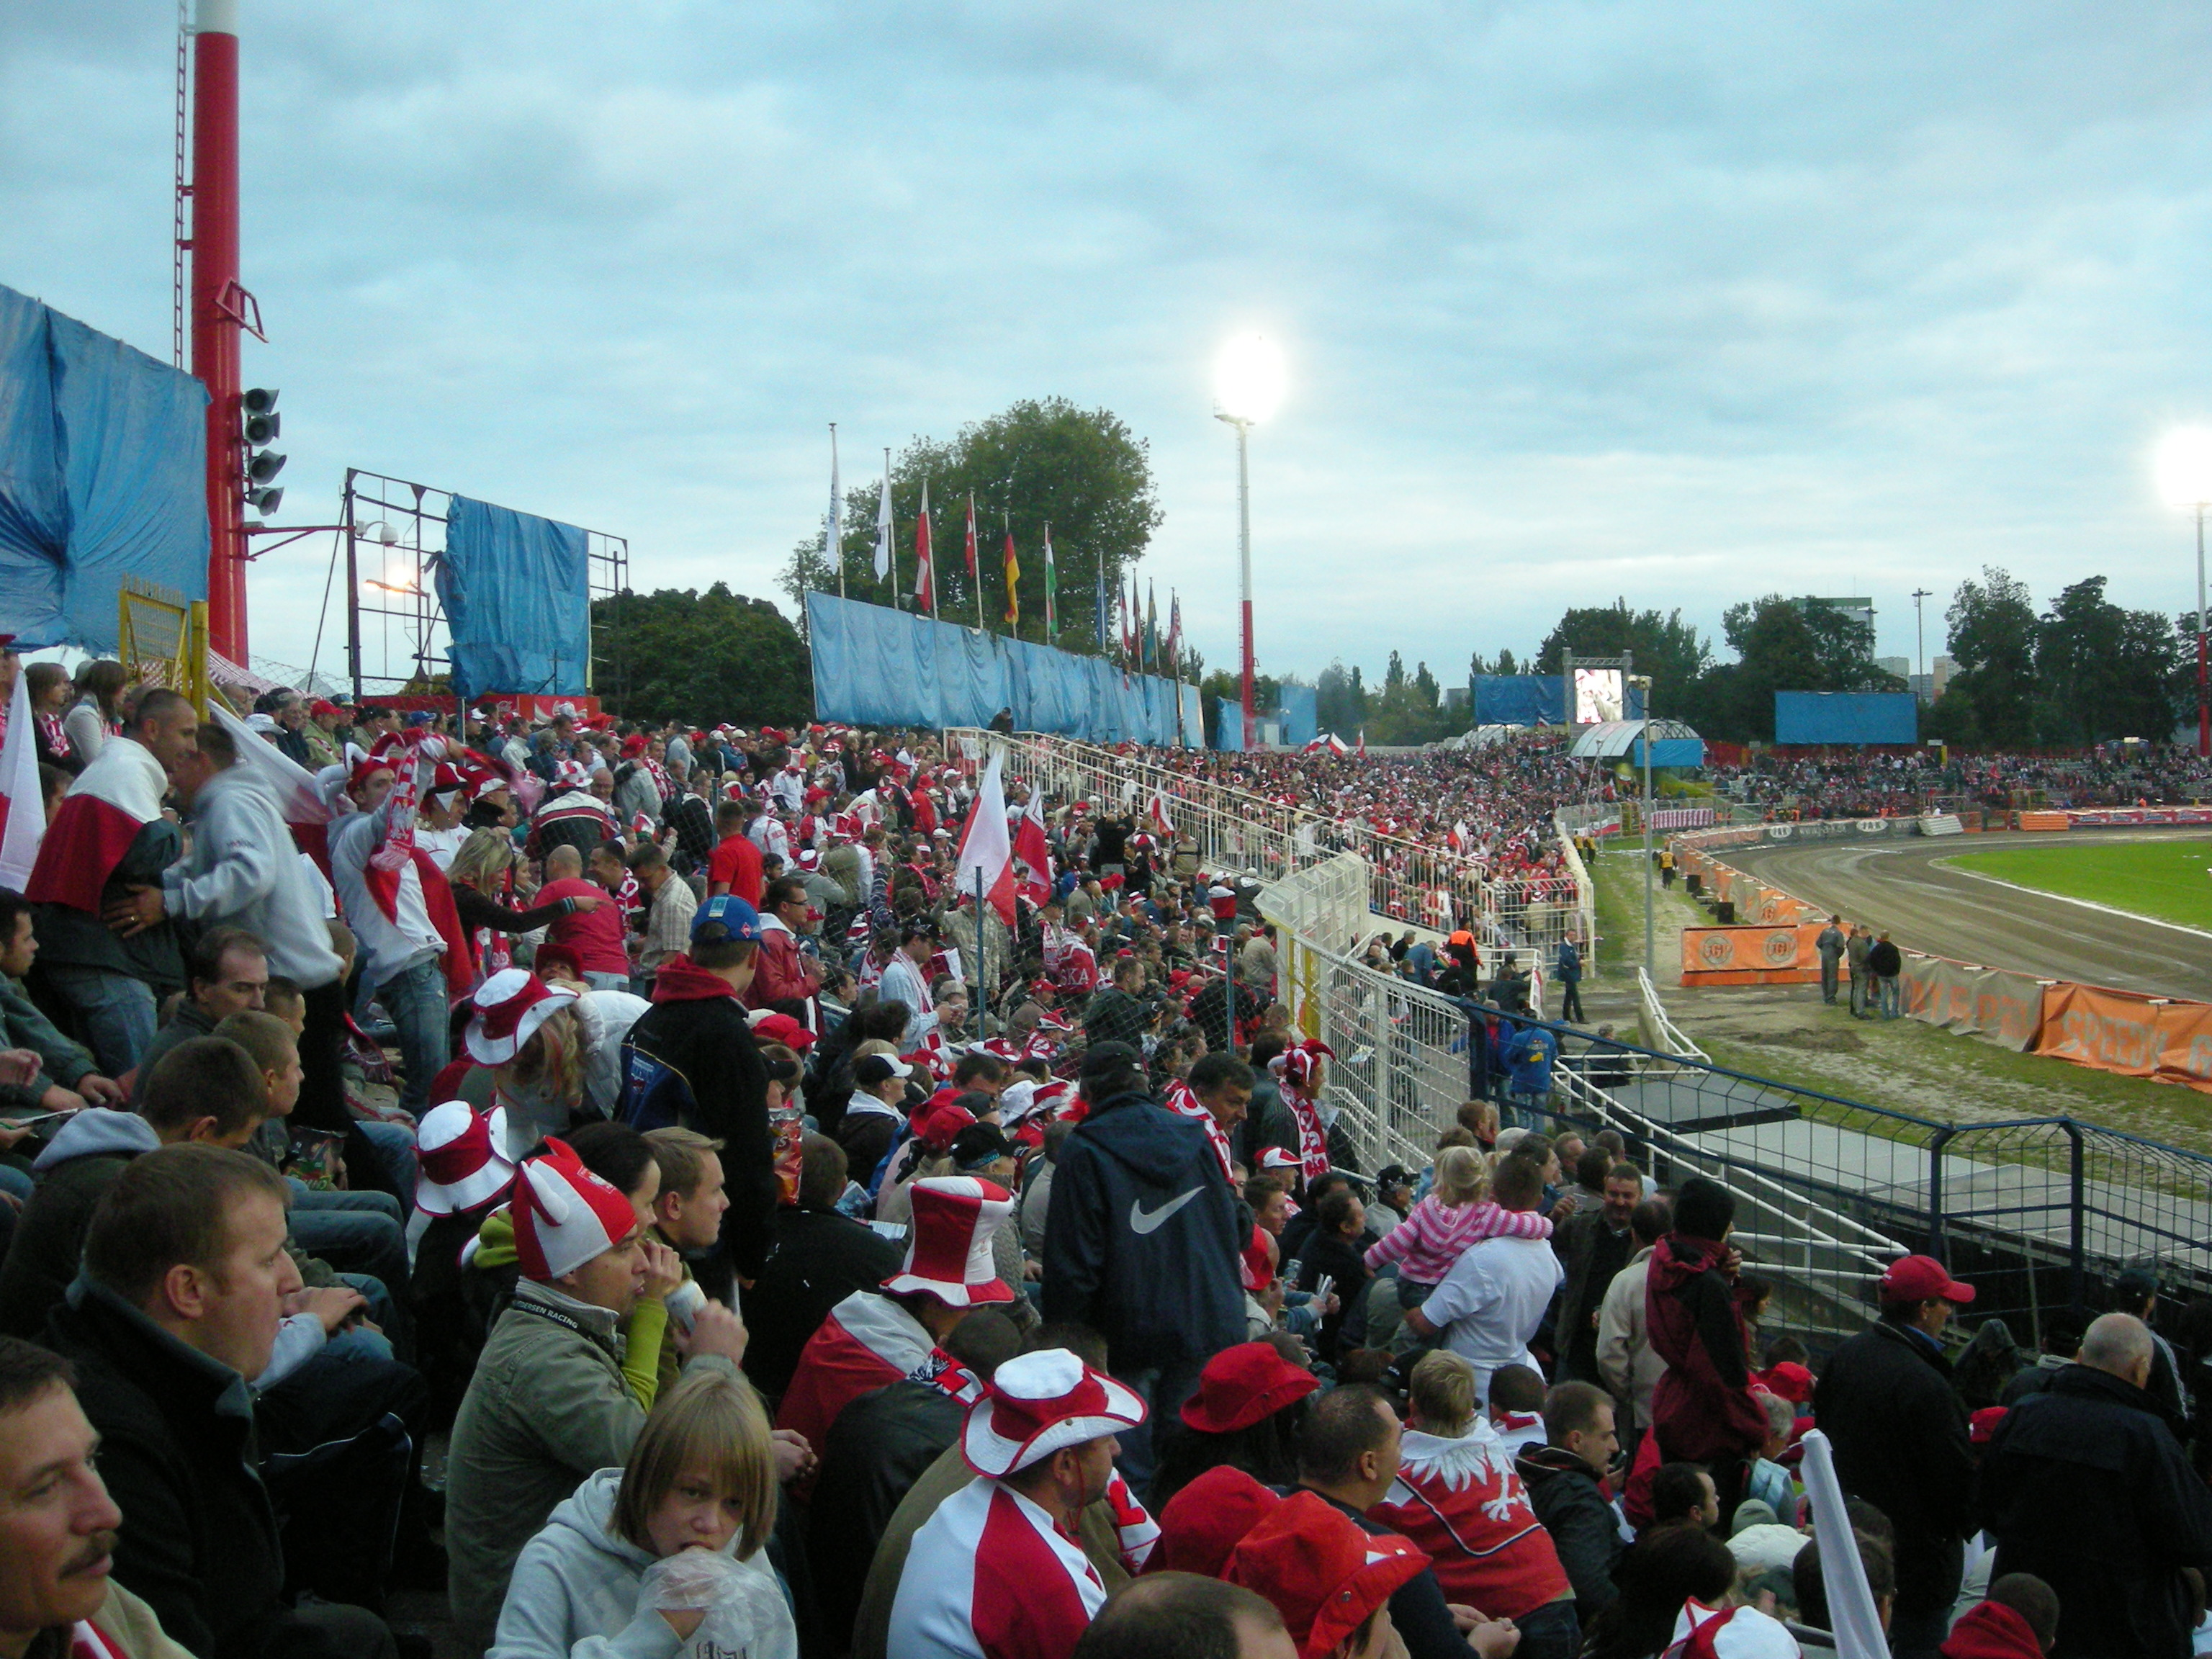 2008 Speedway Grand Prix of Poland